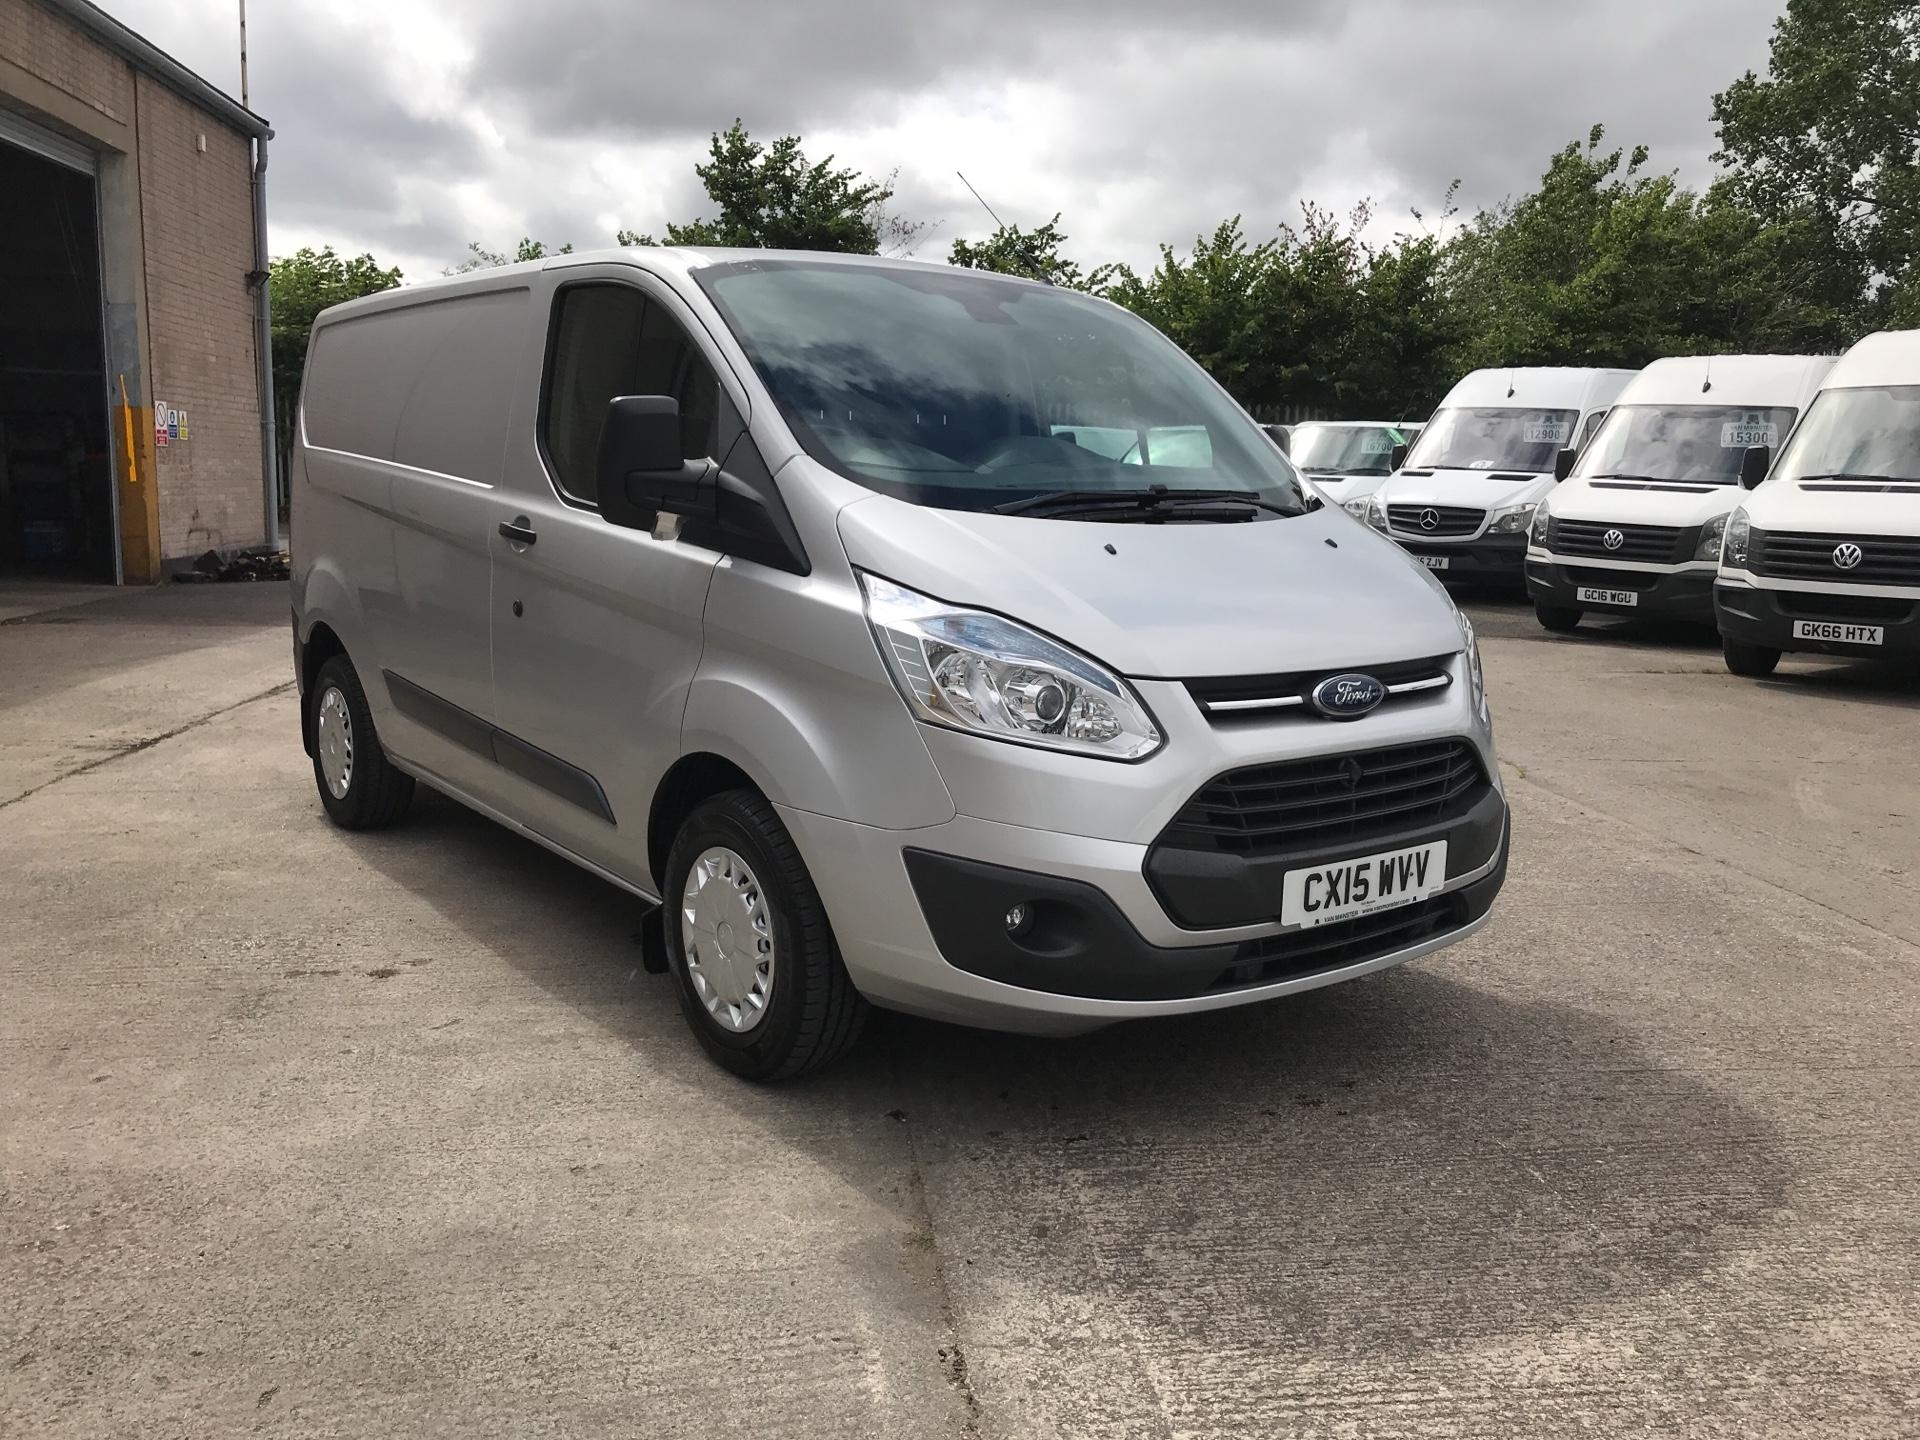 2015 Ford Transit Custom  270 L1 DIESEL 2.2TDCI 100PS LOW ROOF TREND VAN (CX15WVV)